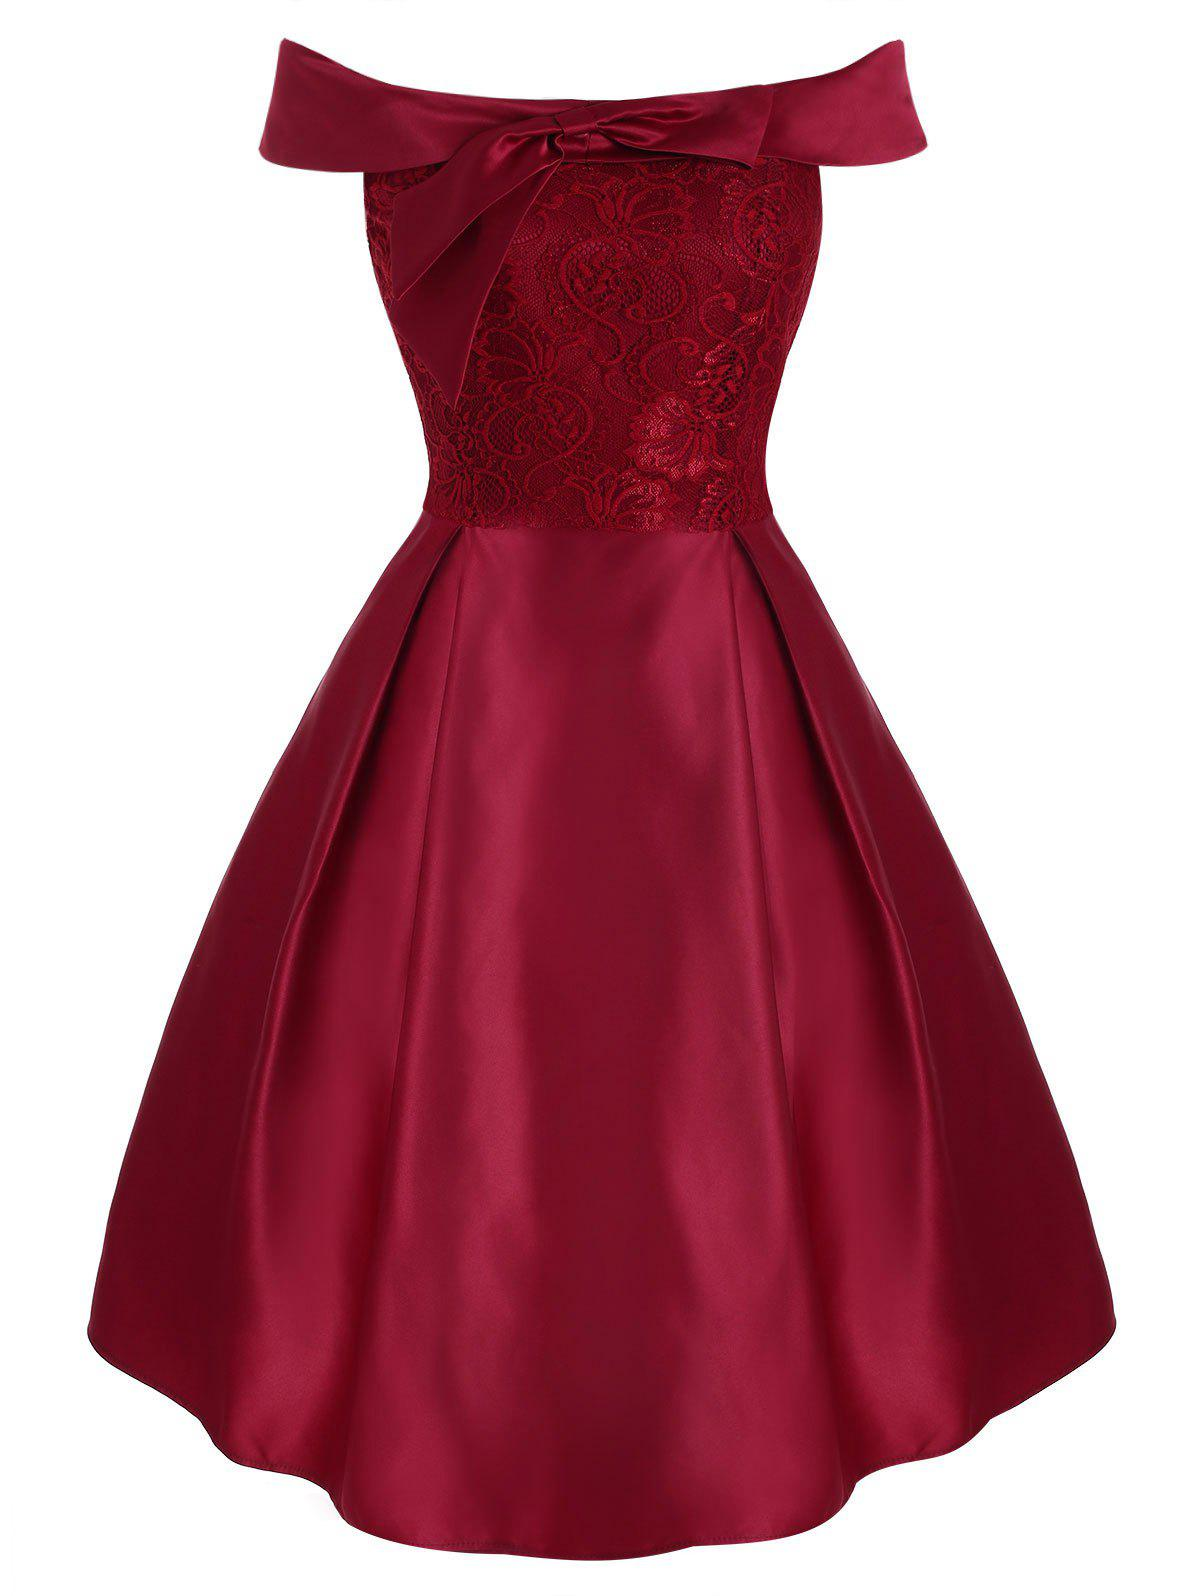 New Lace Panel Off Shoulder Bowknot Party Dress